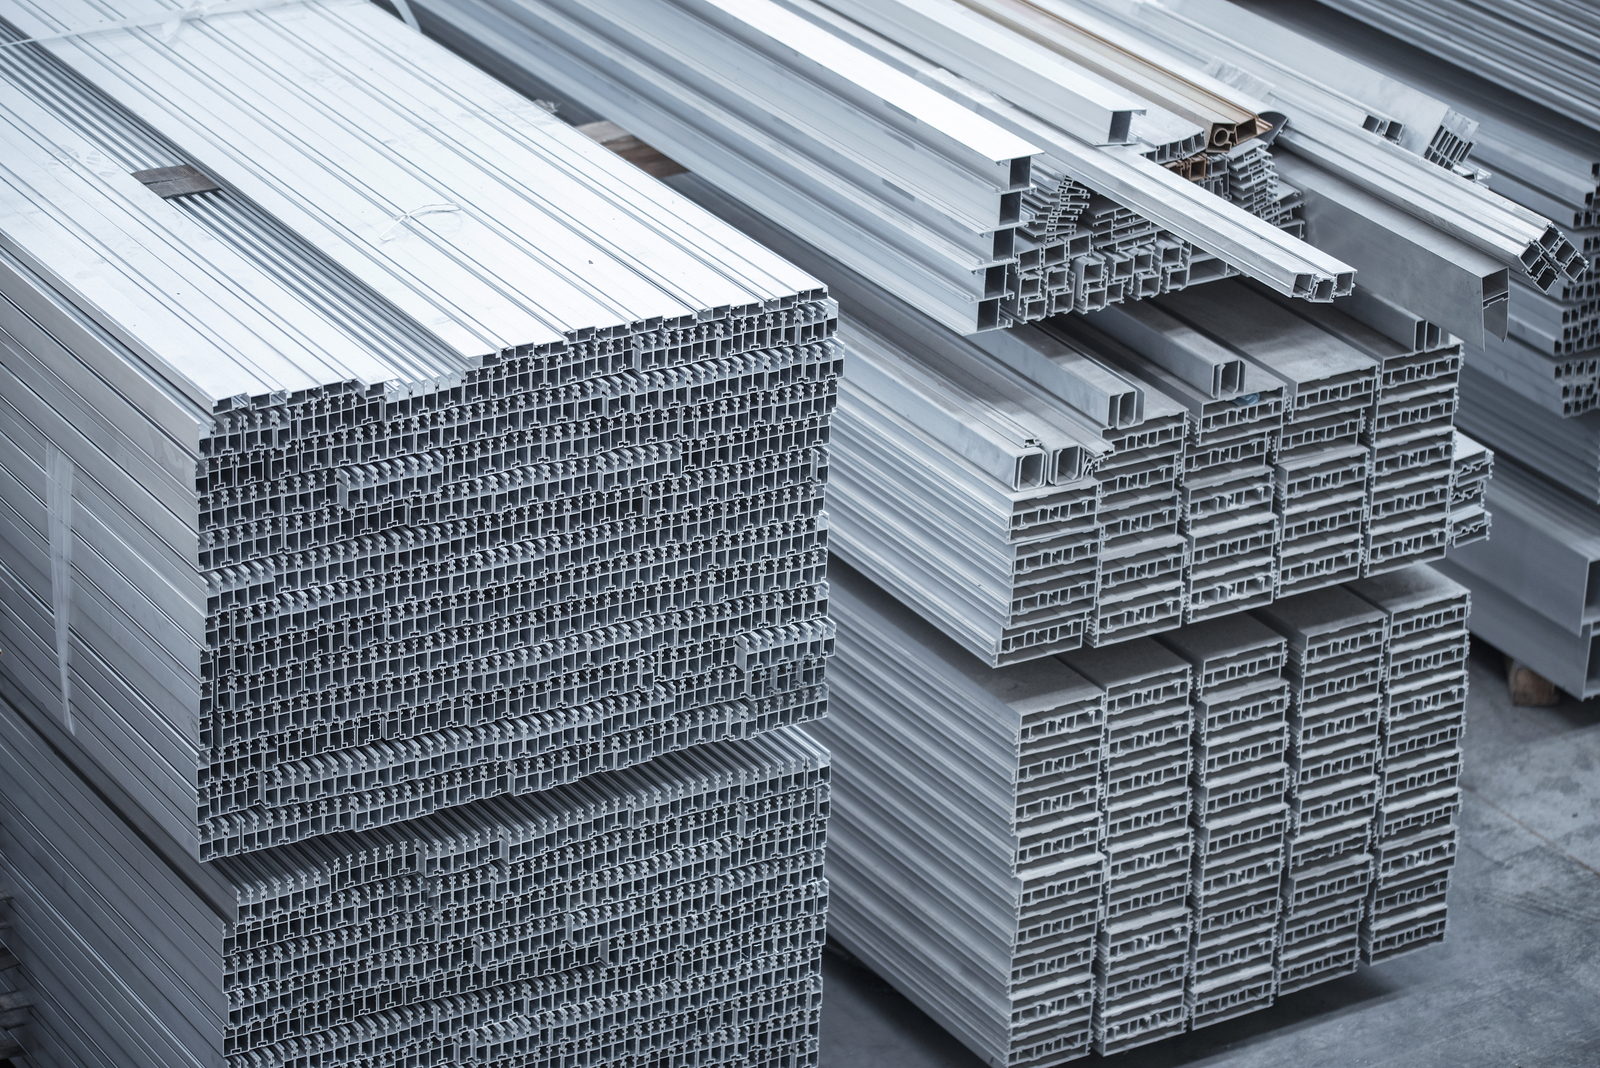 Economists Argue that Trade Tariffs are Rebuilding U.S. Aluminum Industry